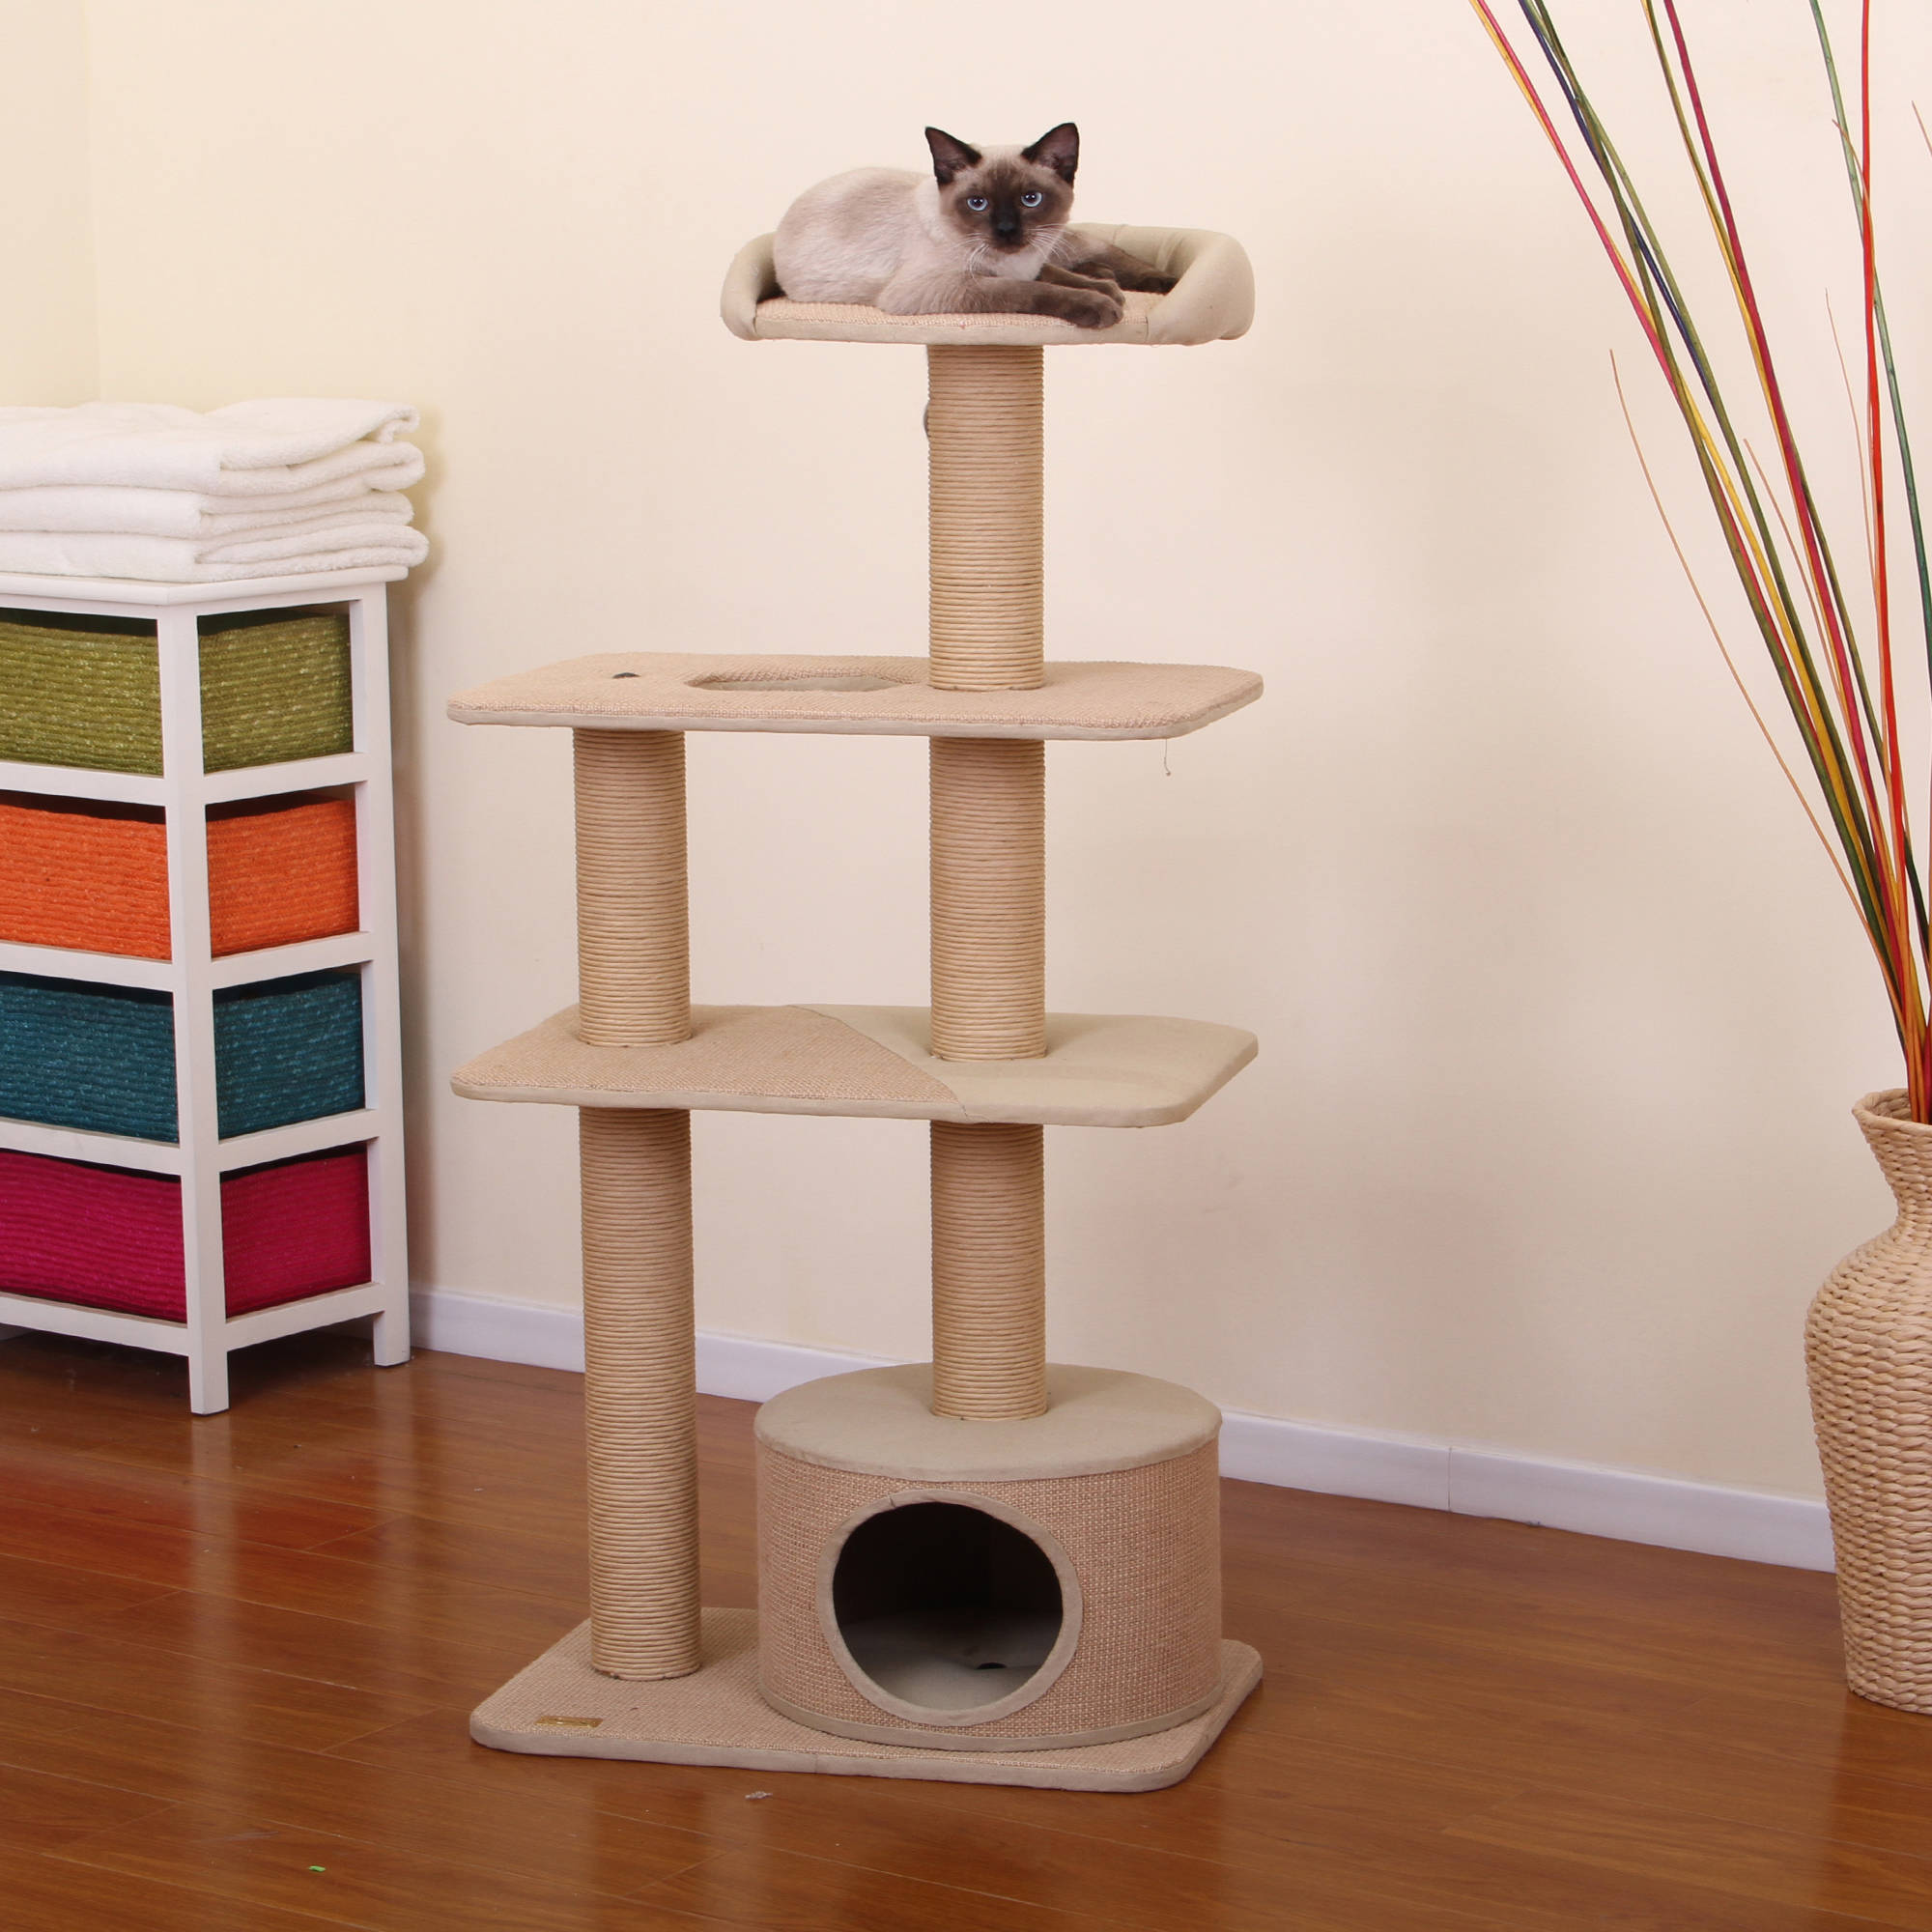 Petpals Group Spire 4 Levels Paper And Jute Towers With Lookout And Condo  Hideout   Walmart.com